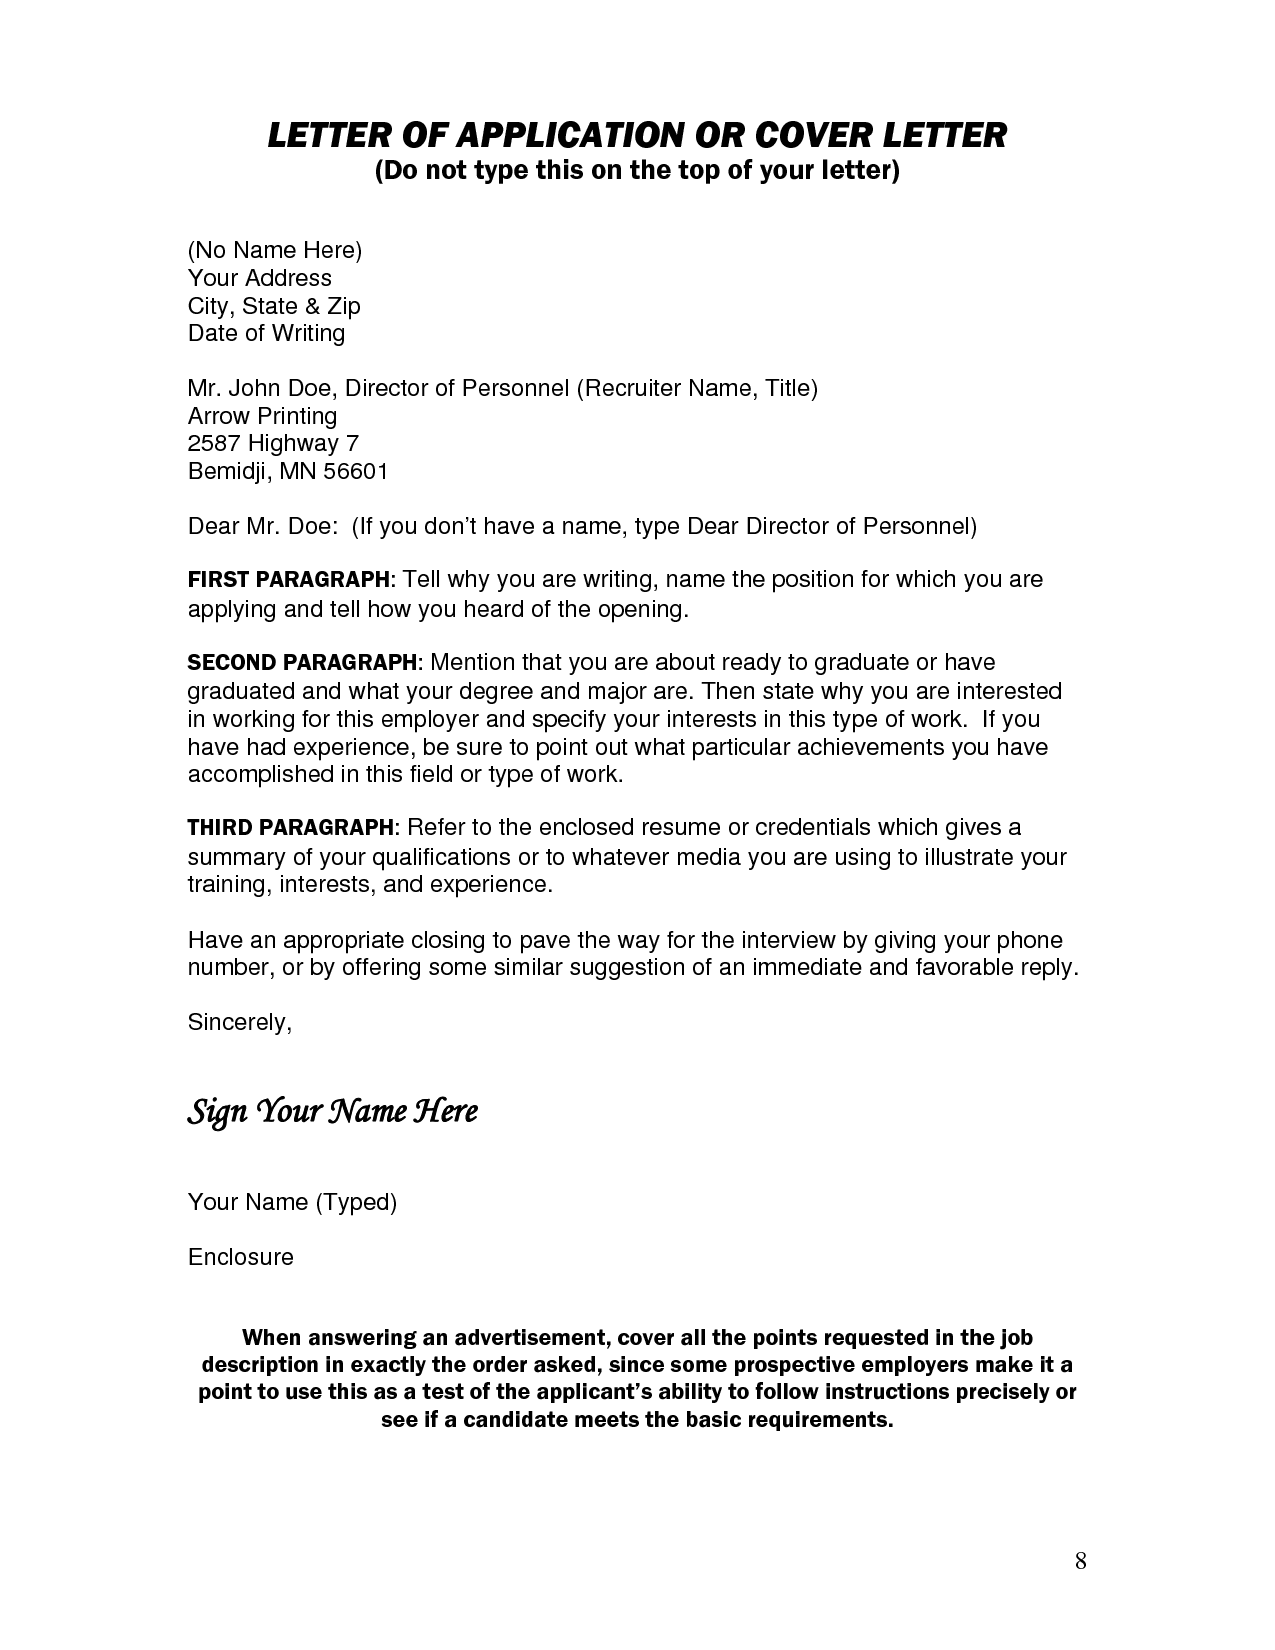 Cover Letter Template No Name English Cover Letter For